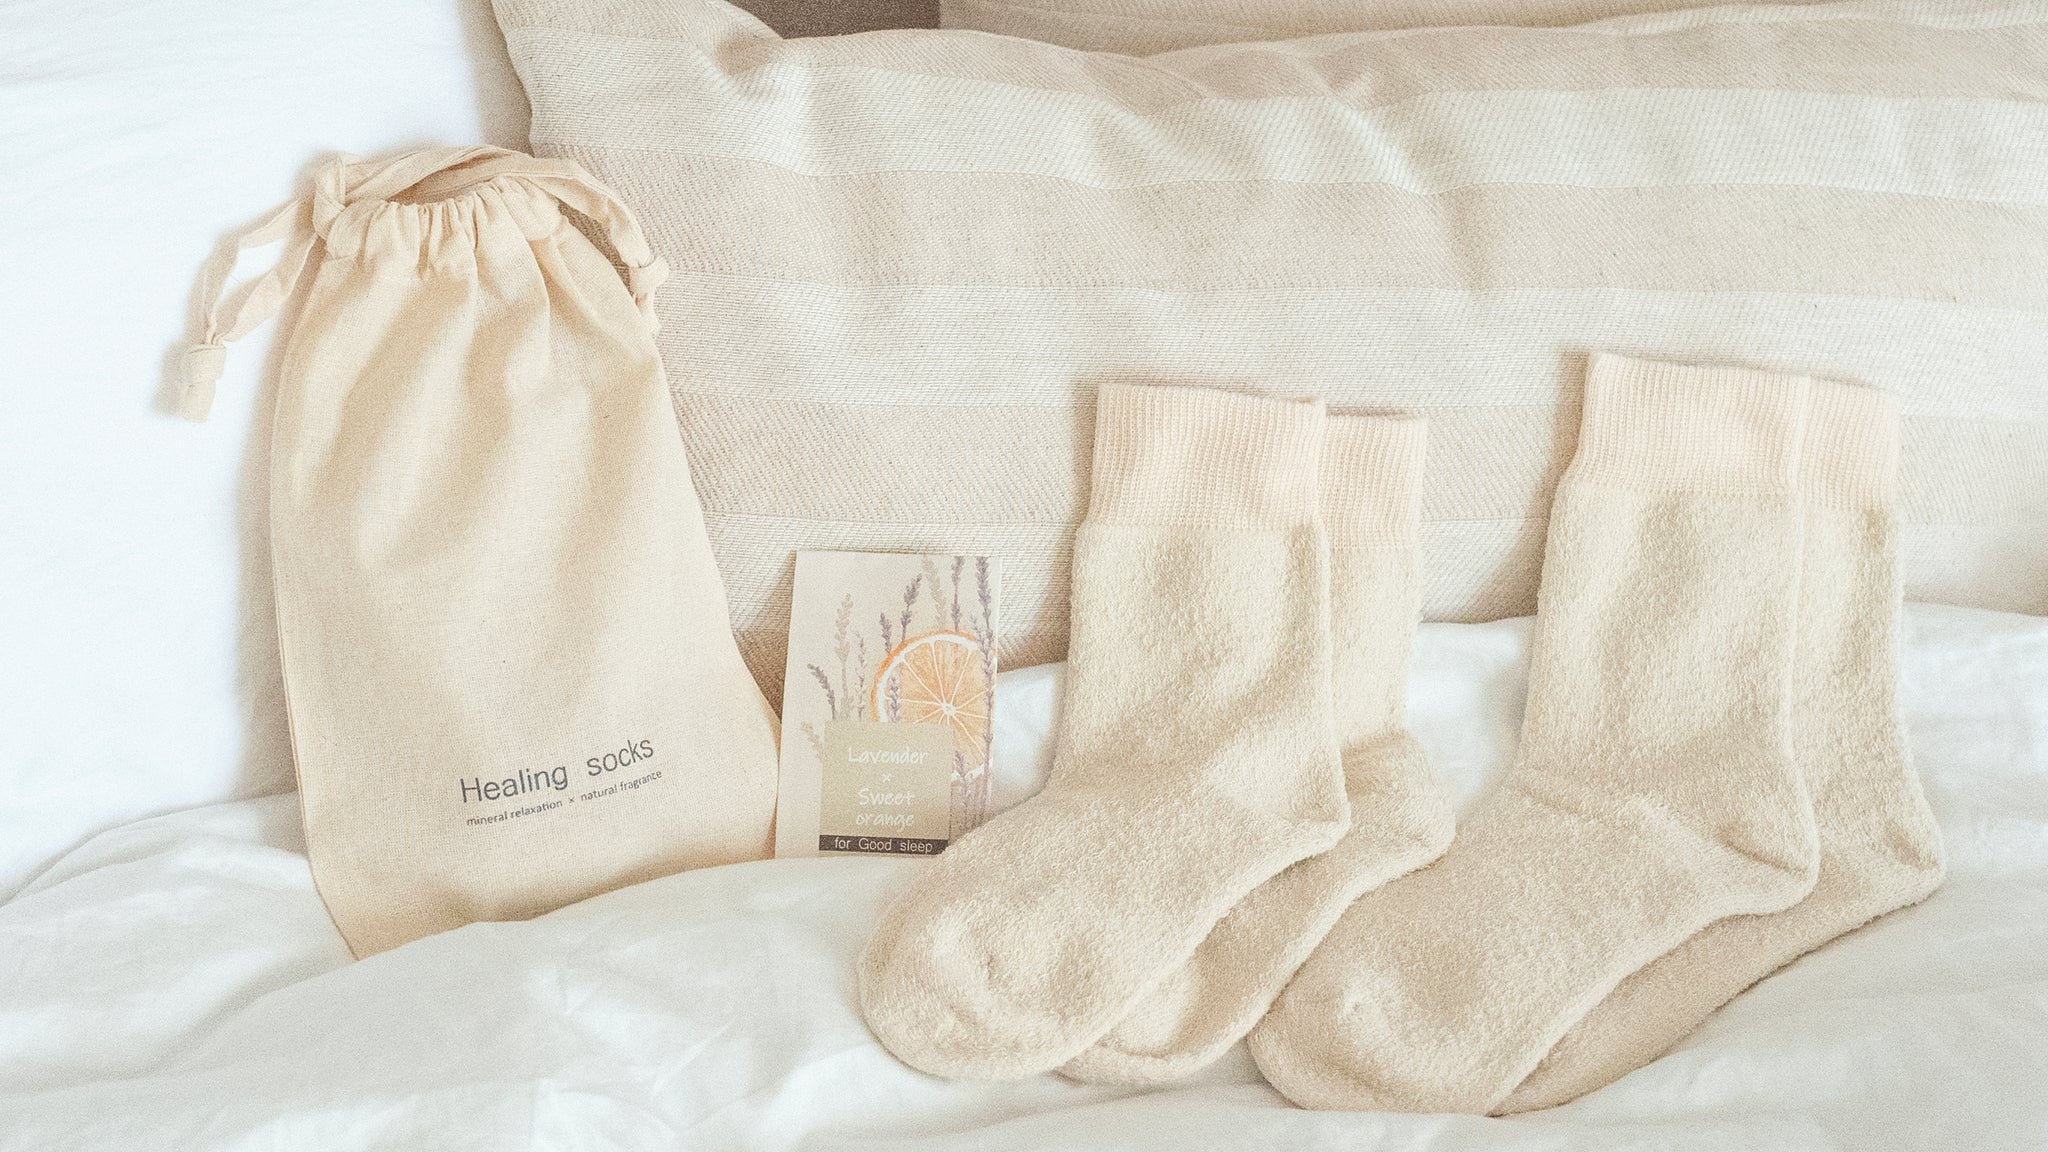 Quality time line with nature debut   healing socks公式ギフト通販